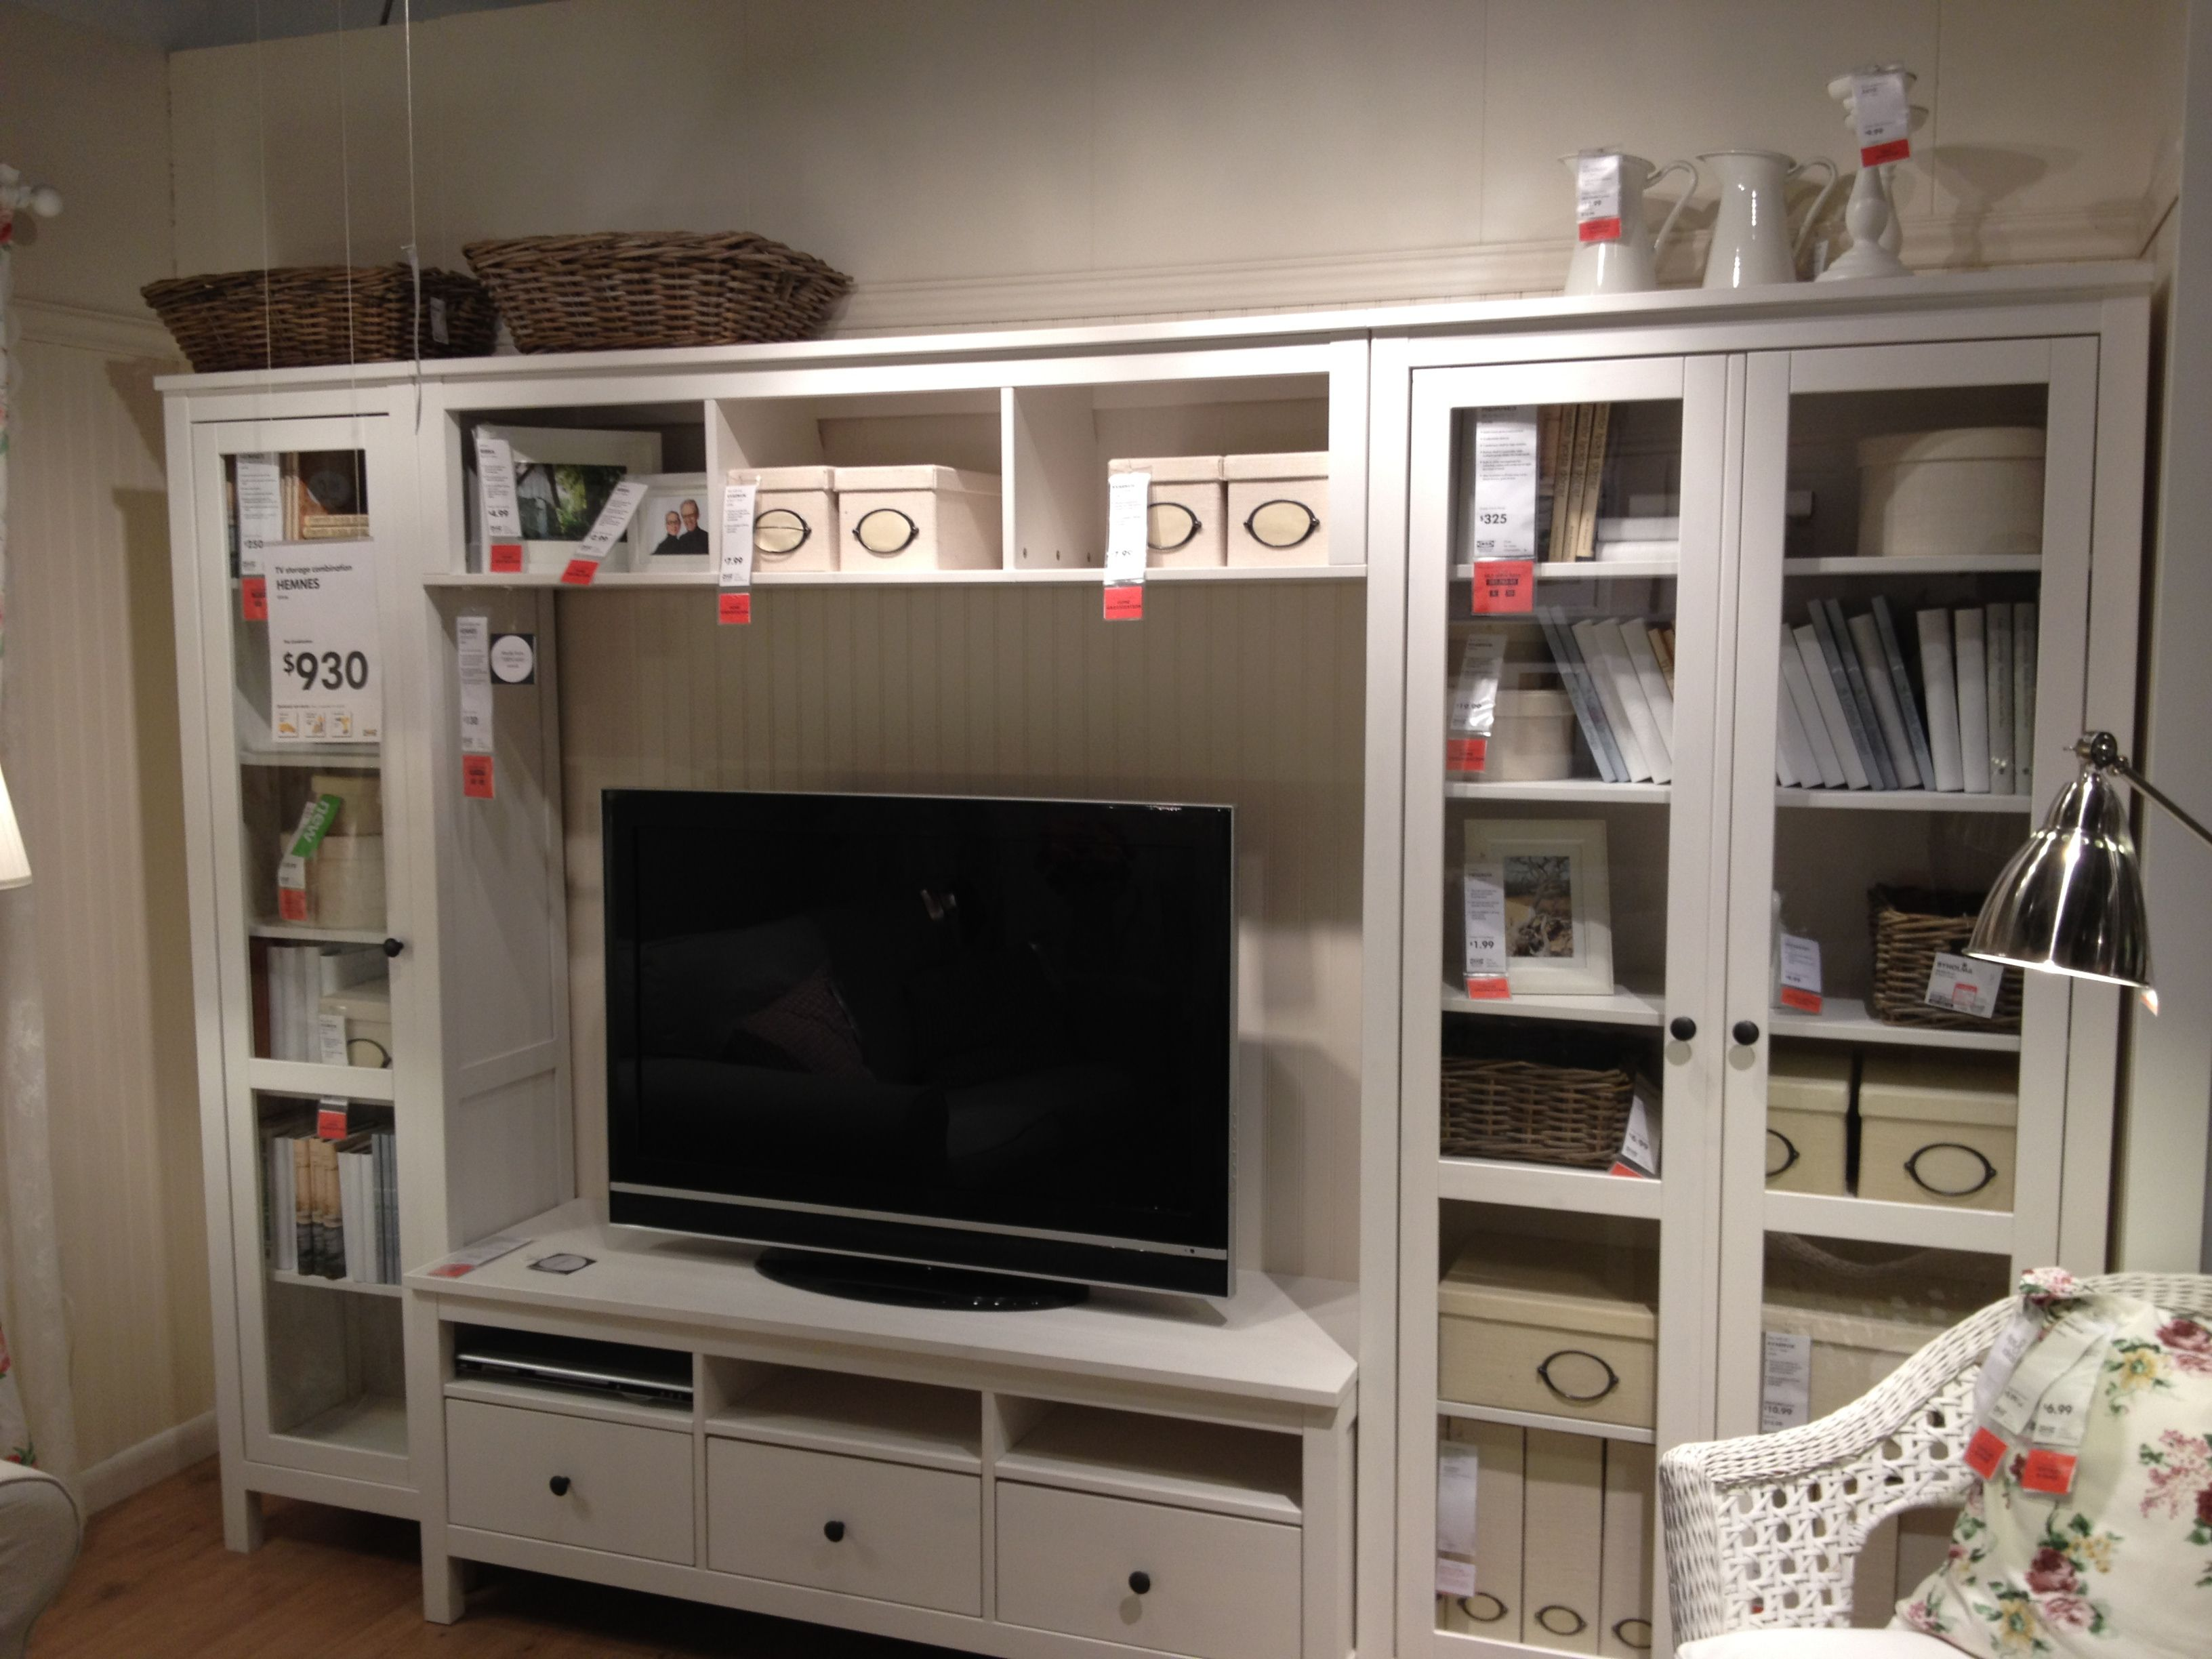 Tv wand ideen ikea  TV storage combination Ikea Hemnes $930 | Loft | Pinterest ...